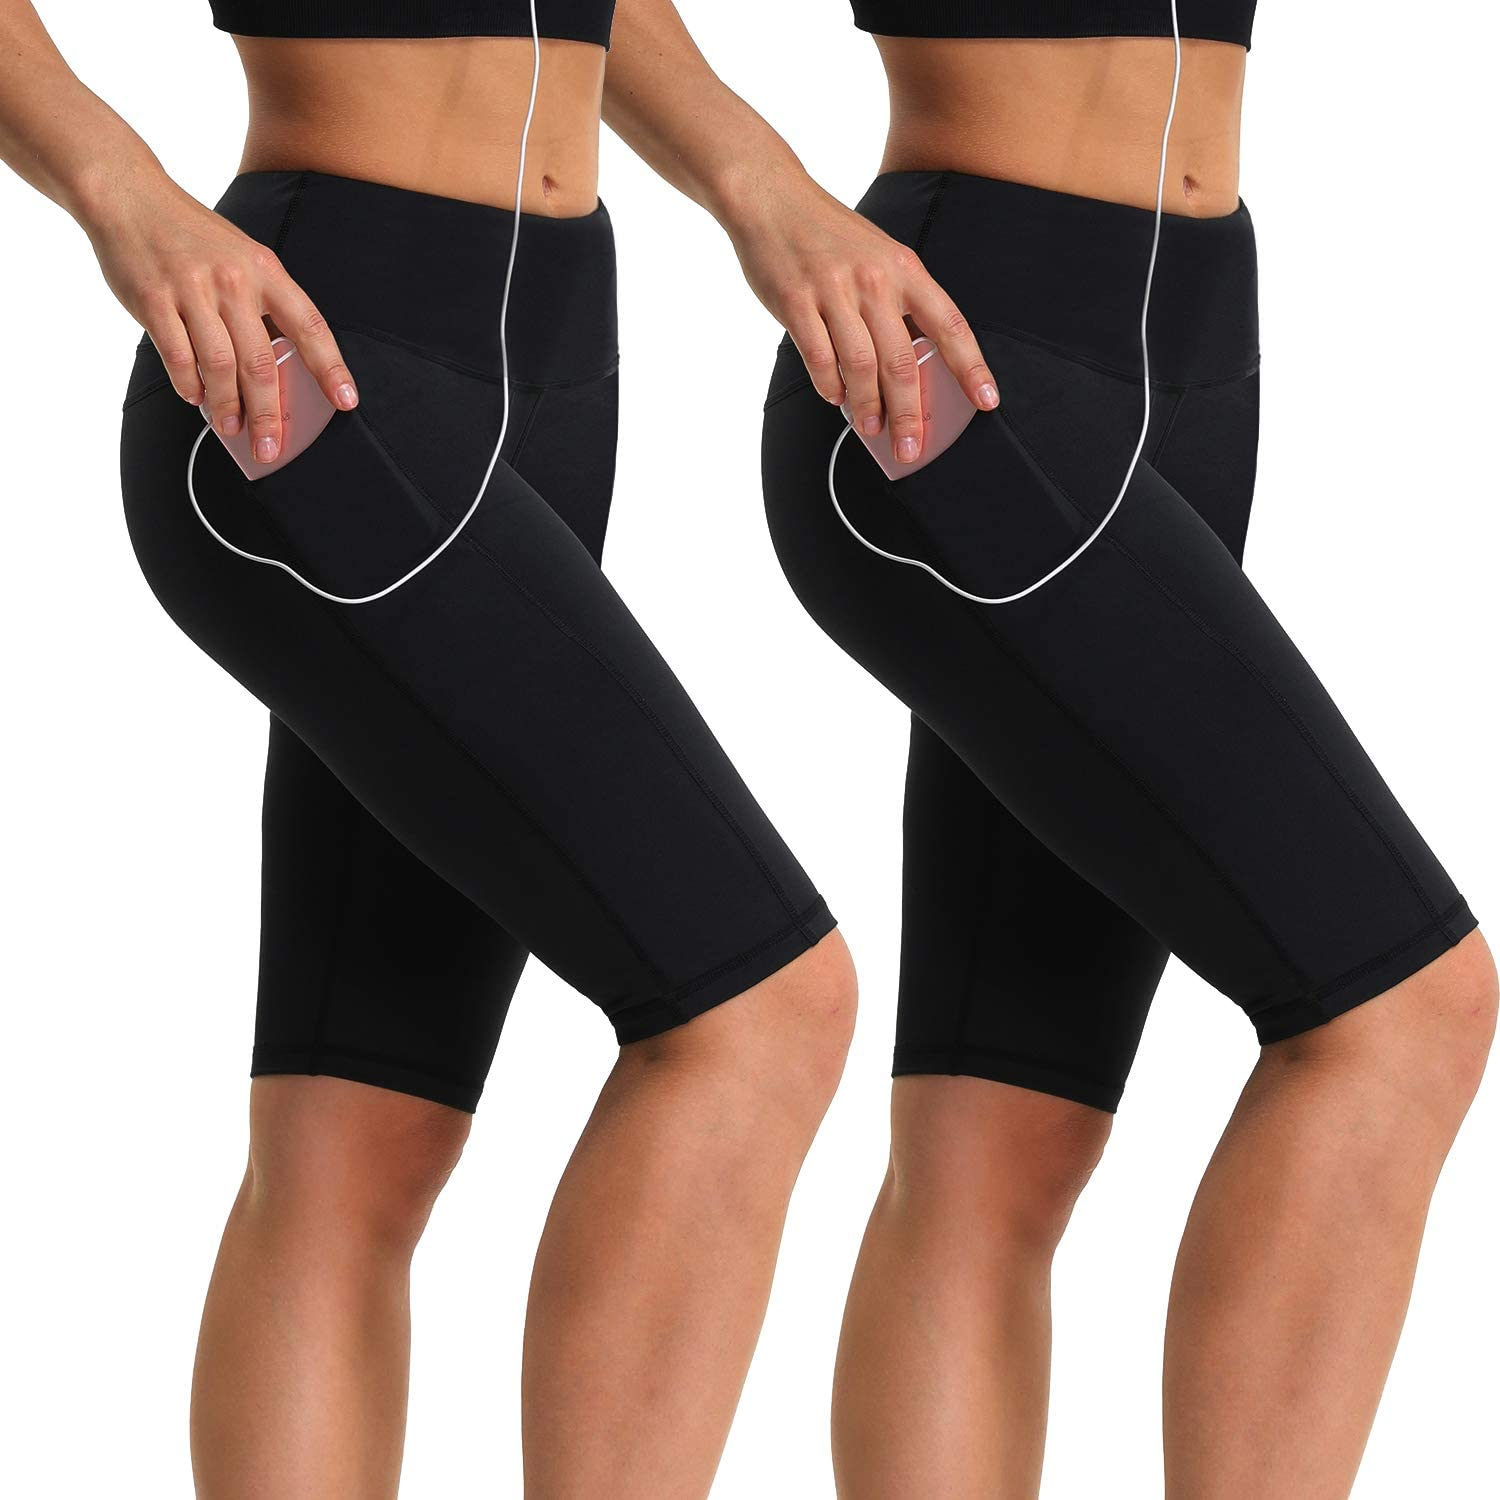 SouqFone Workout Shorts for Women with Pockets High Waisted Biker Shorts Yoga Running Exercise Shorts Leggings